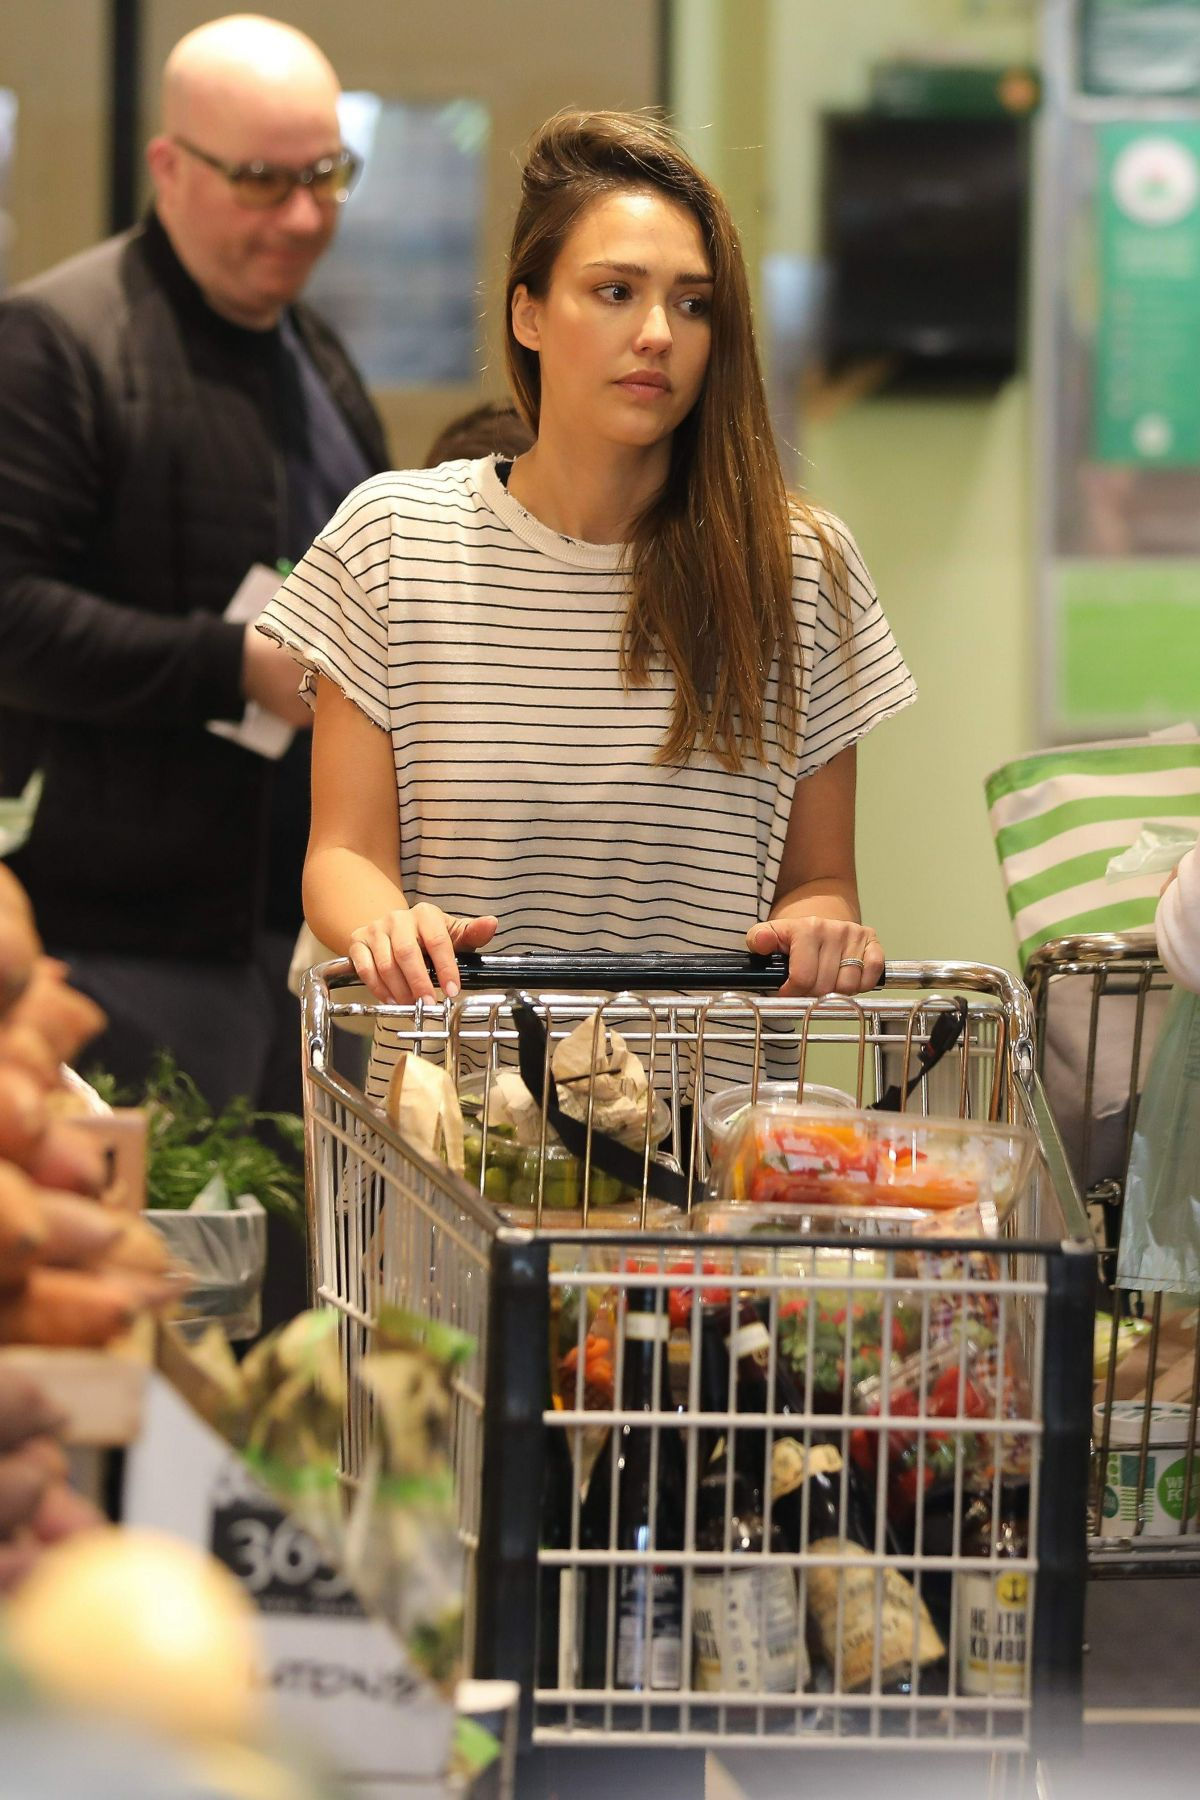 http://www.hawtcelebs.com/wp-content/uploads/2017/04/jessica-alba-shopping-at-whole-foods-in-beverly-hills-04-09-2017_3.jpg